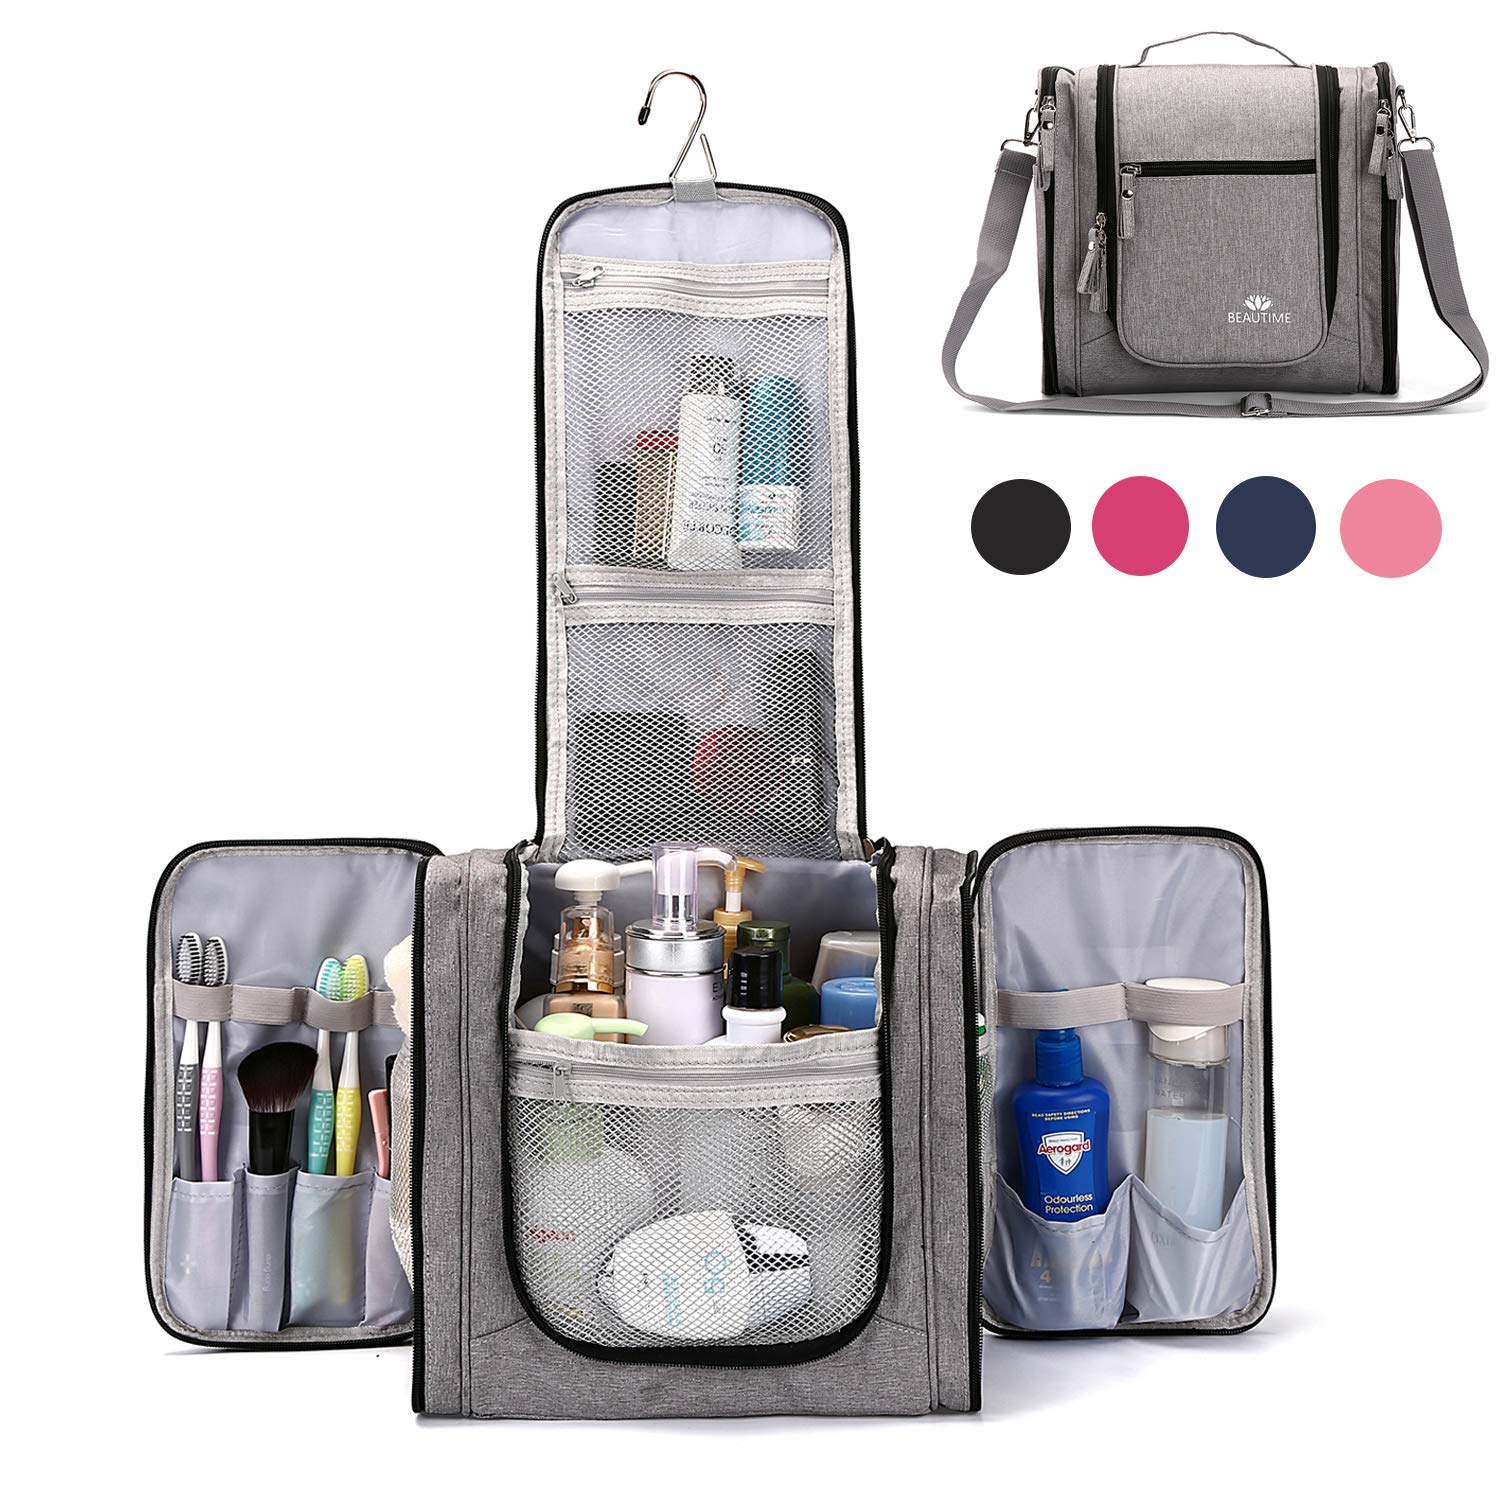 721593a380c9 Large Hanging Travel Toiletry Bag for Men and Women Waterproof Makeup  Organizer Bags wash bag Shaving Kit Cosmetic Bag for Accessories,  Shampoo,Bathroom ...